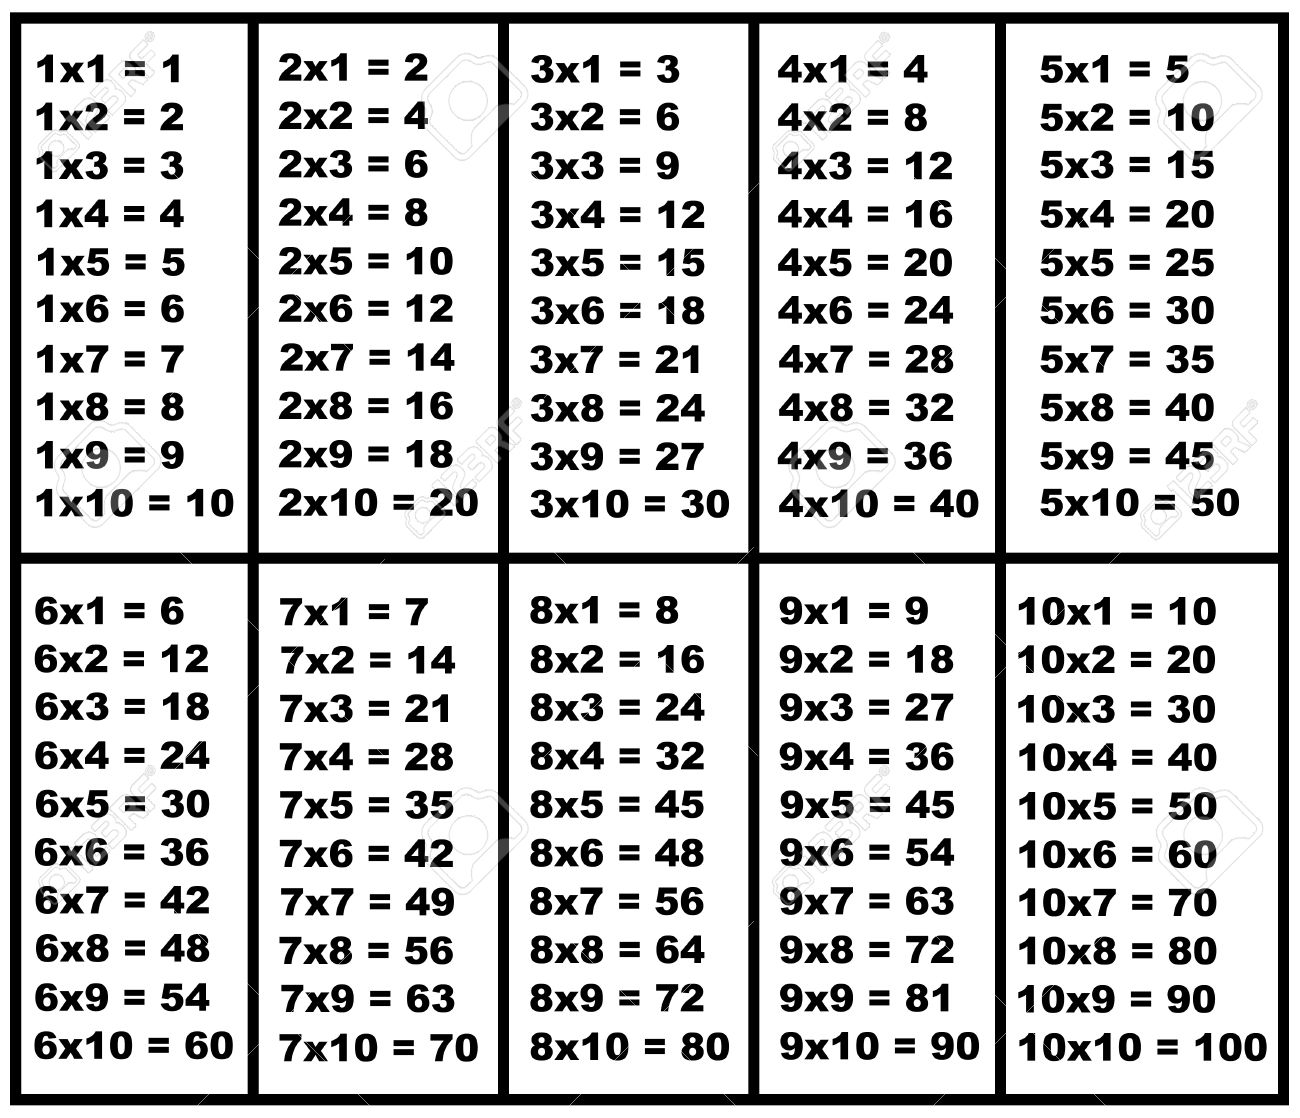 Multiplication table pdf choice image periodic table images 40x40 multiplication table image collections periodic table images multiplication table 30x30 pdf gallery periodic table images gamestrikefo Gallery